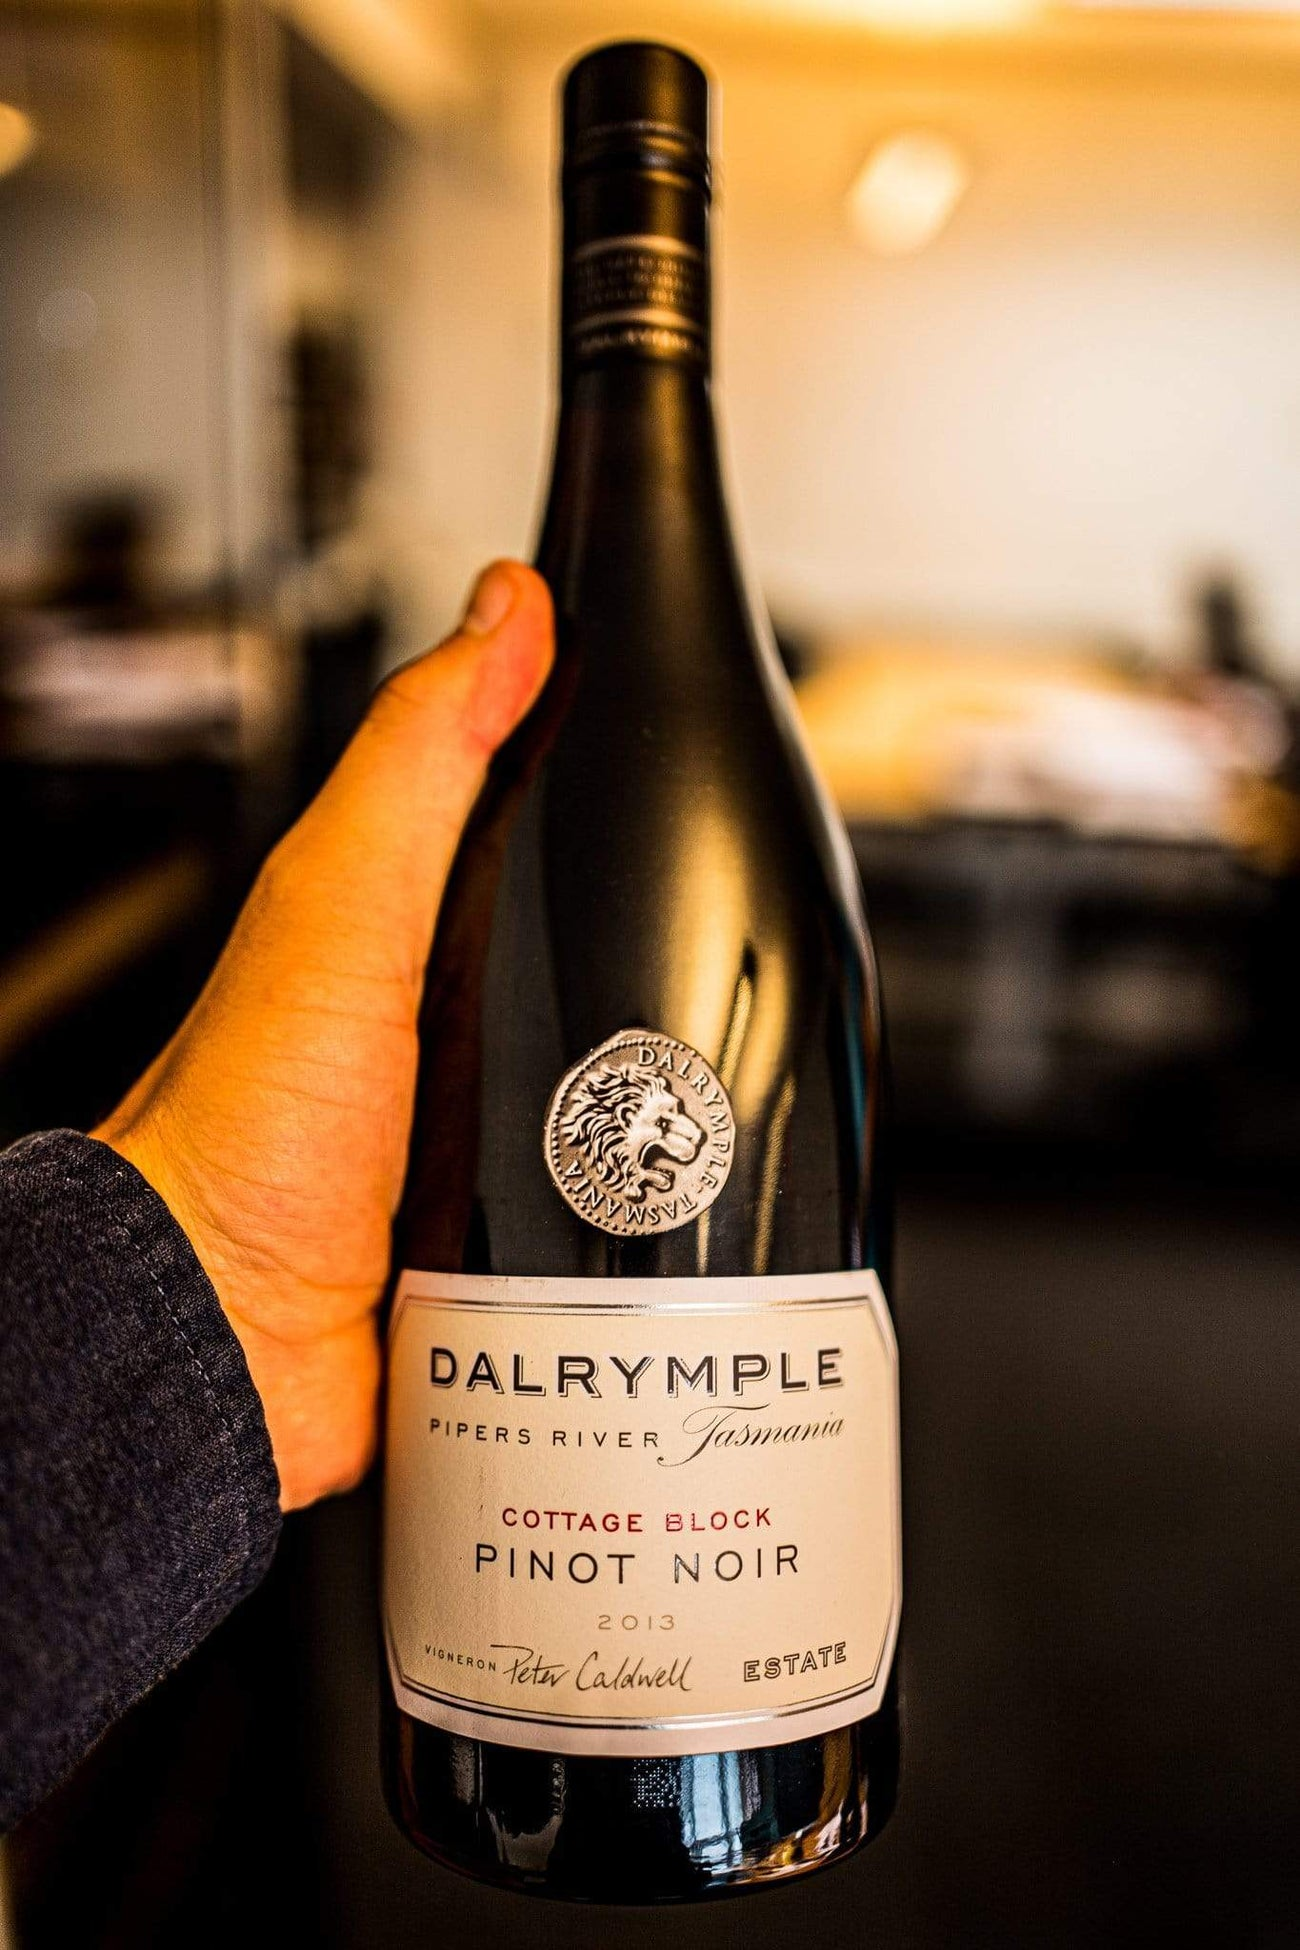 Dalrymple Pipers River Cottage Block Pinot Noir 2013